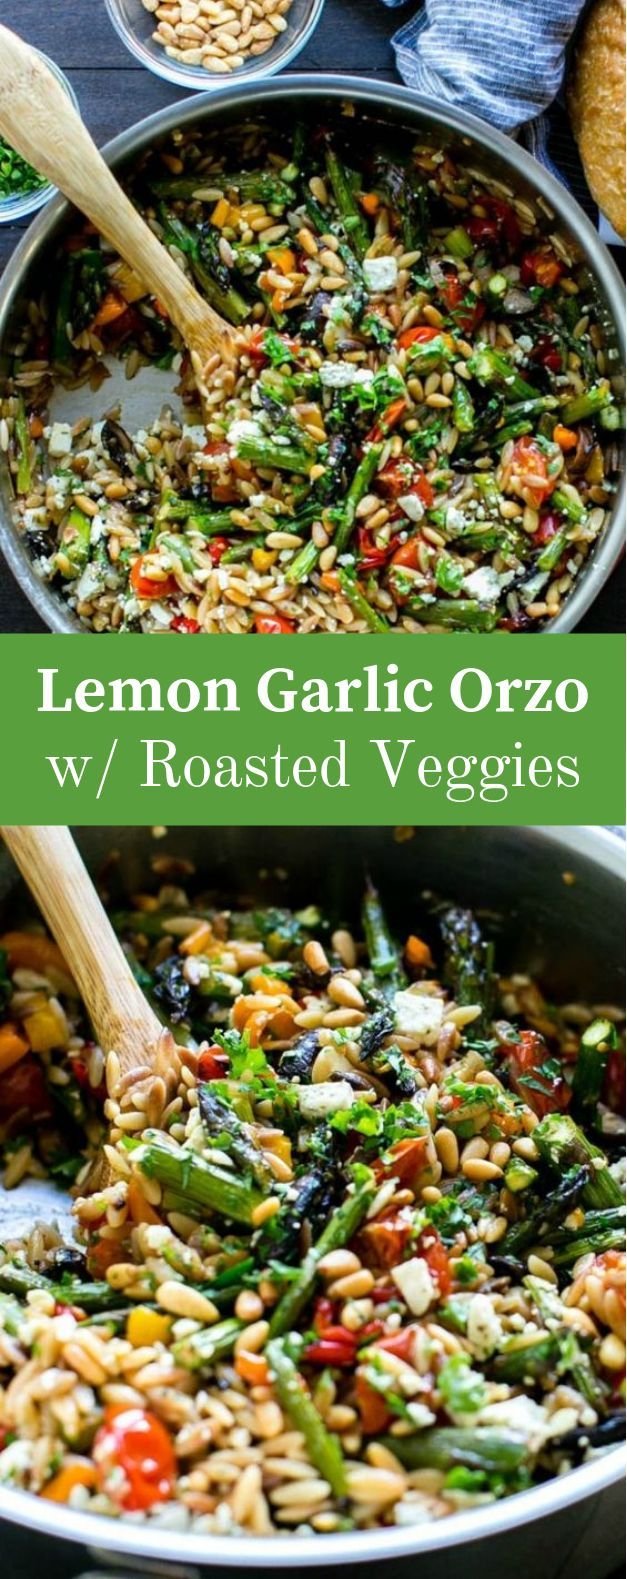 LEMON GARLIC ORZO WITH ROASTED VEGETABLES LEMON GARLIC ORZO WITH ROASTED VEGETABLES